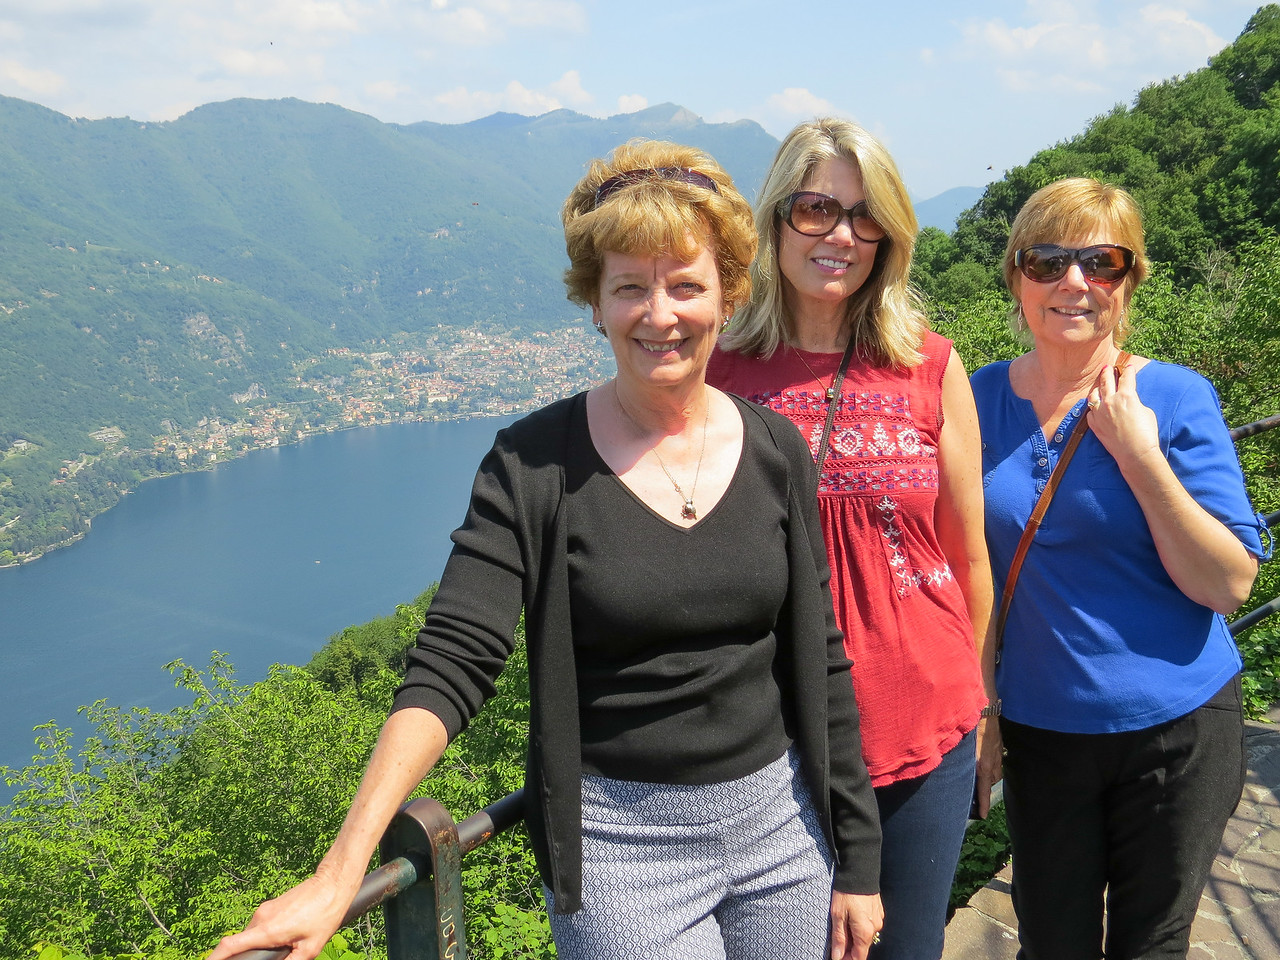 Hiking in Brunate